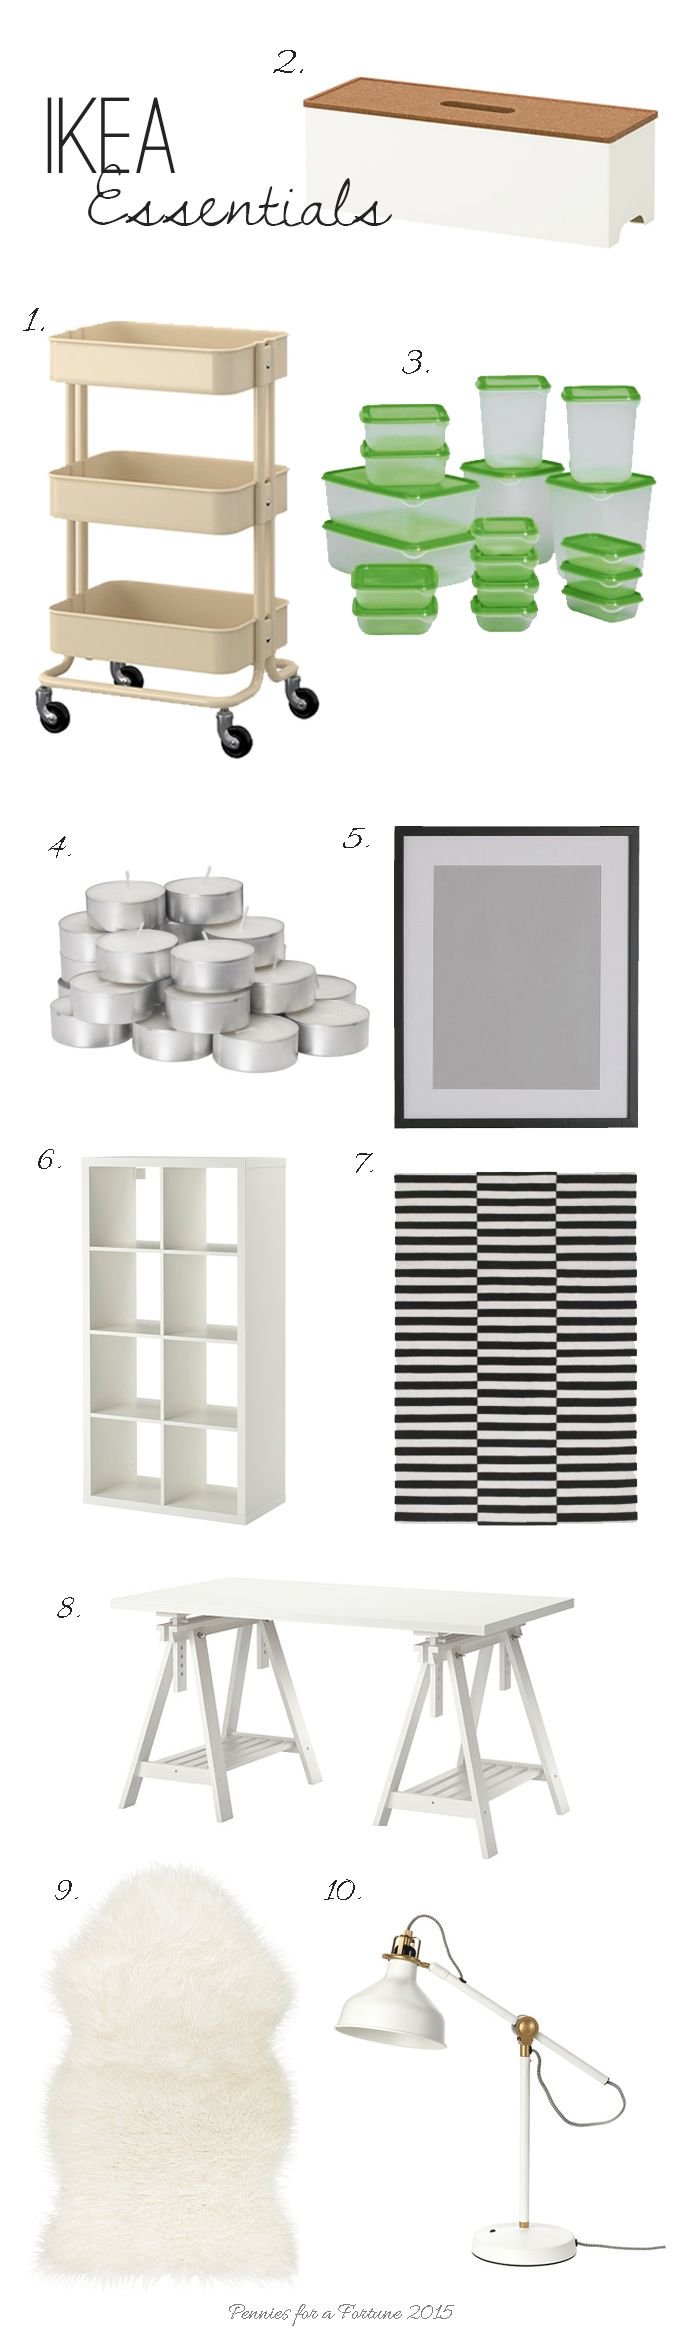 Totally Awesome IKEA Essentials Roundup. Here's a list of IKEA must haves that actually look and work great!  For ideas and inspiration, check out www.penniesforafortune.com  PIN now!